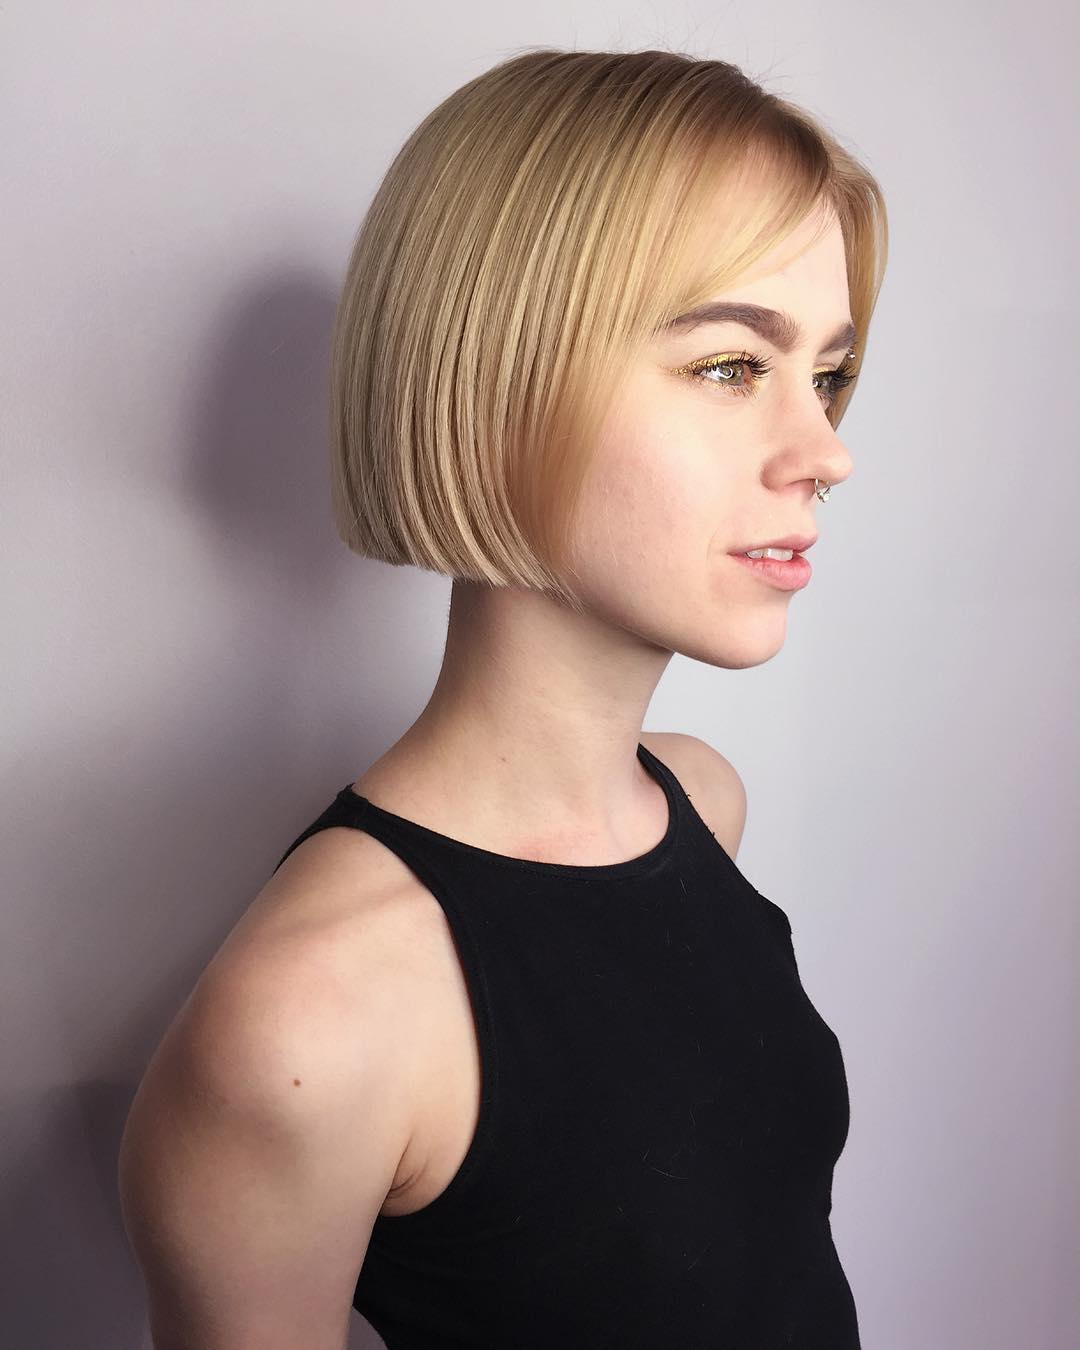 Short Blonde Blunt Bob with Parted Bangs - The Latest ...